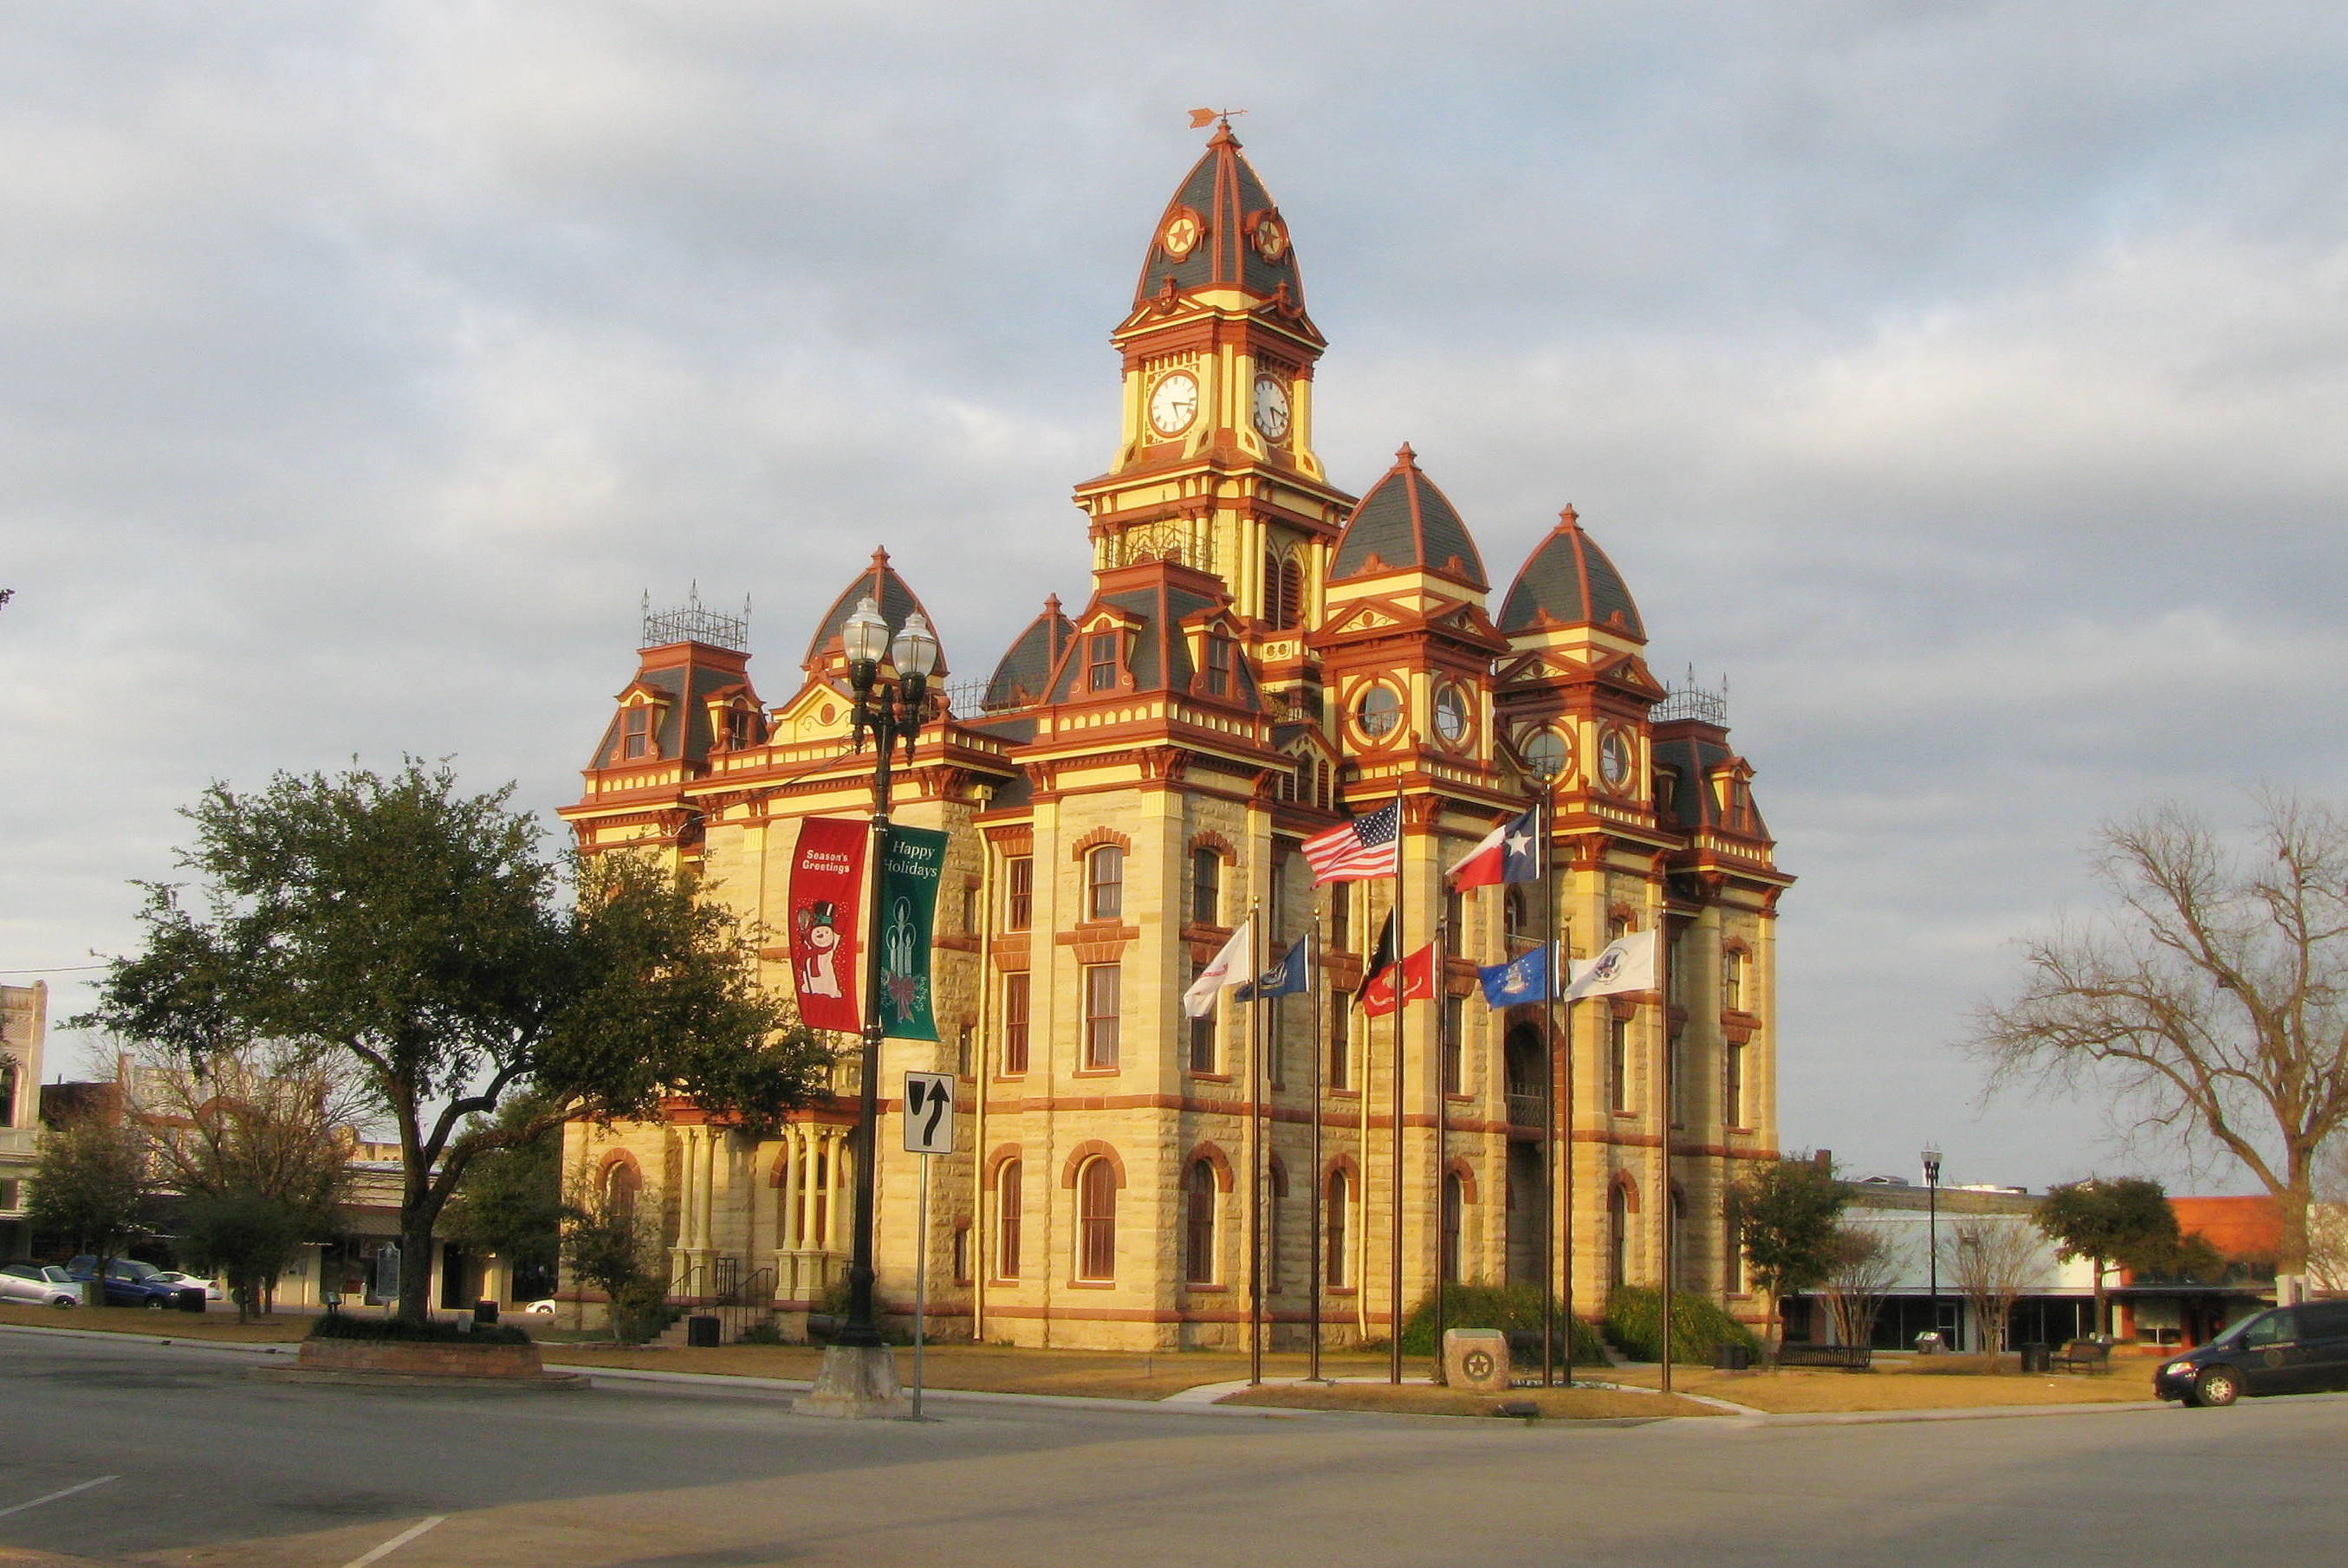 Caldwell County Courthouse (Texas) - Wikipedia